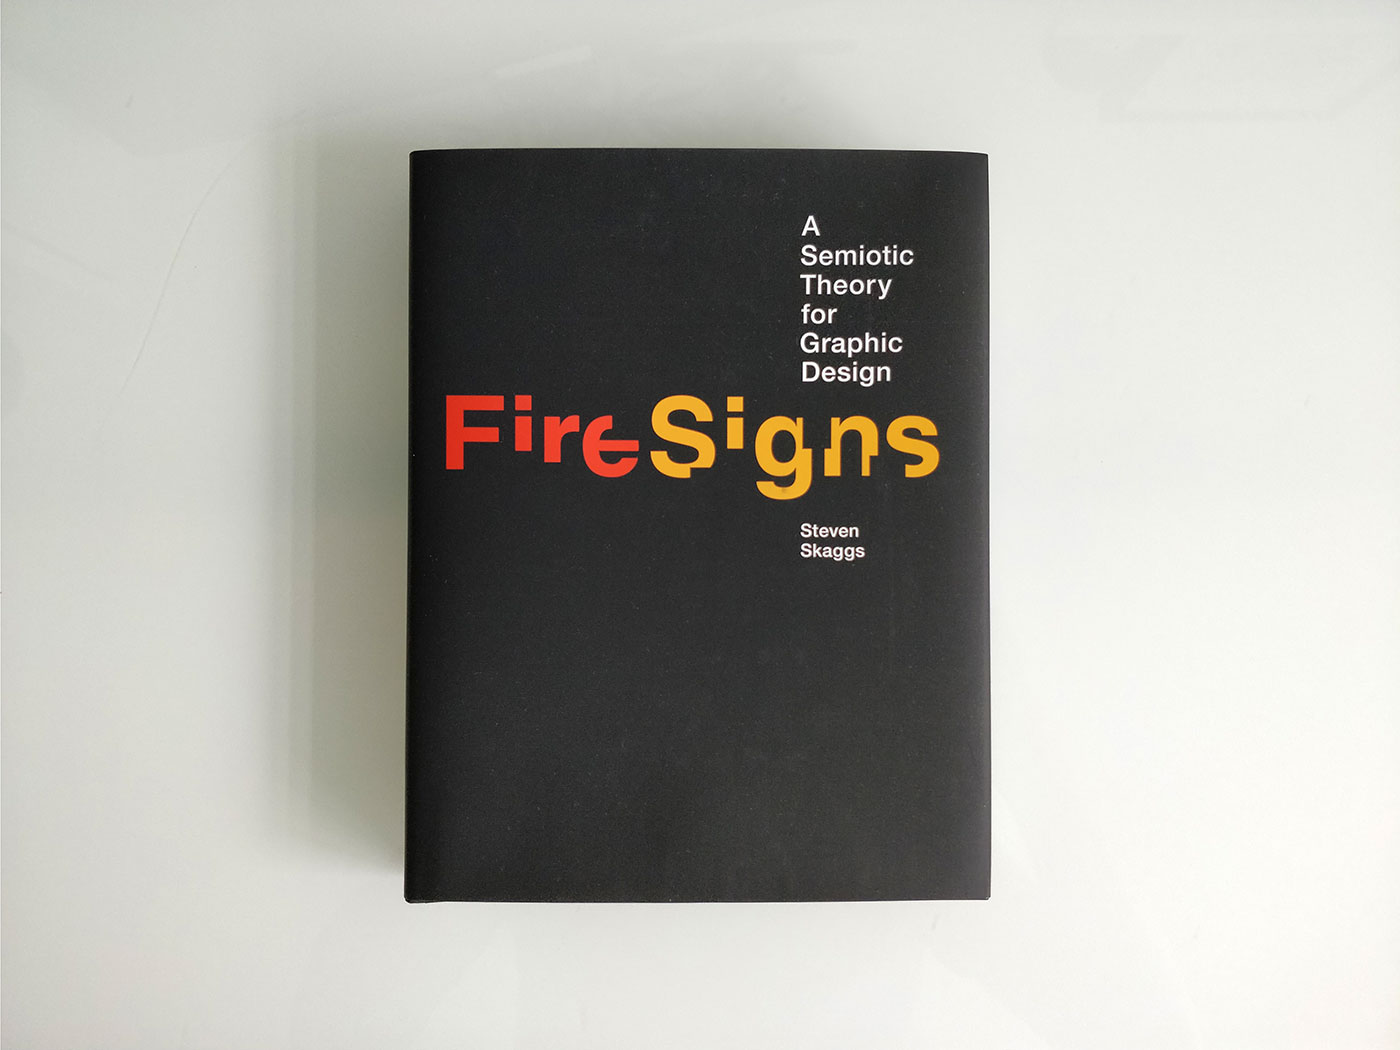 logo design love on logos and brand identity design firesigns a semiotic theory for graphic design